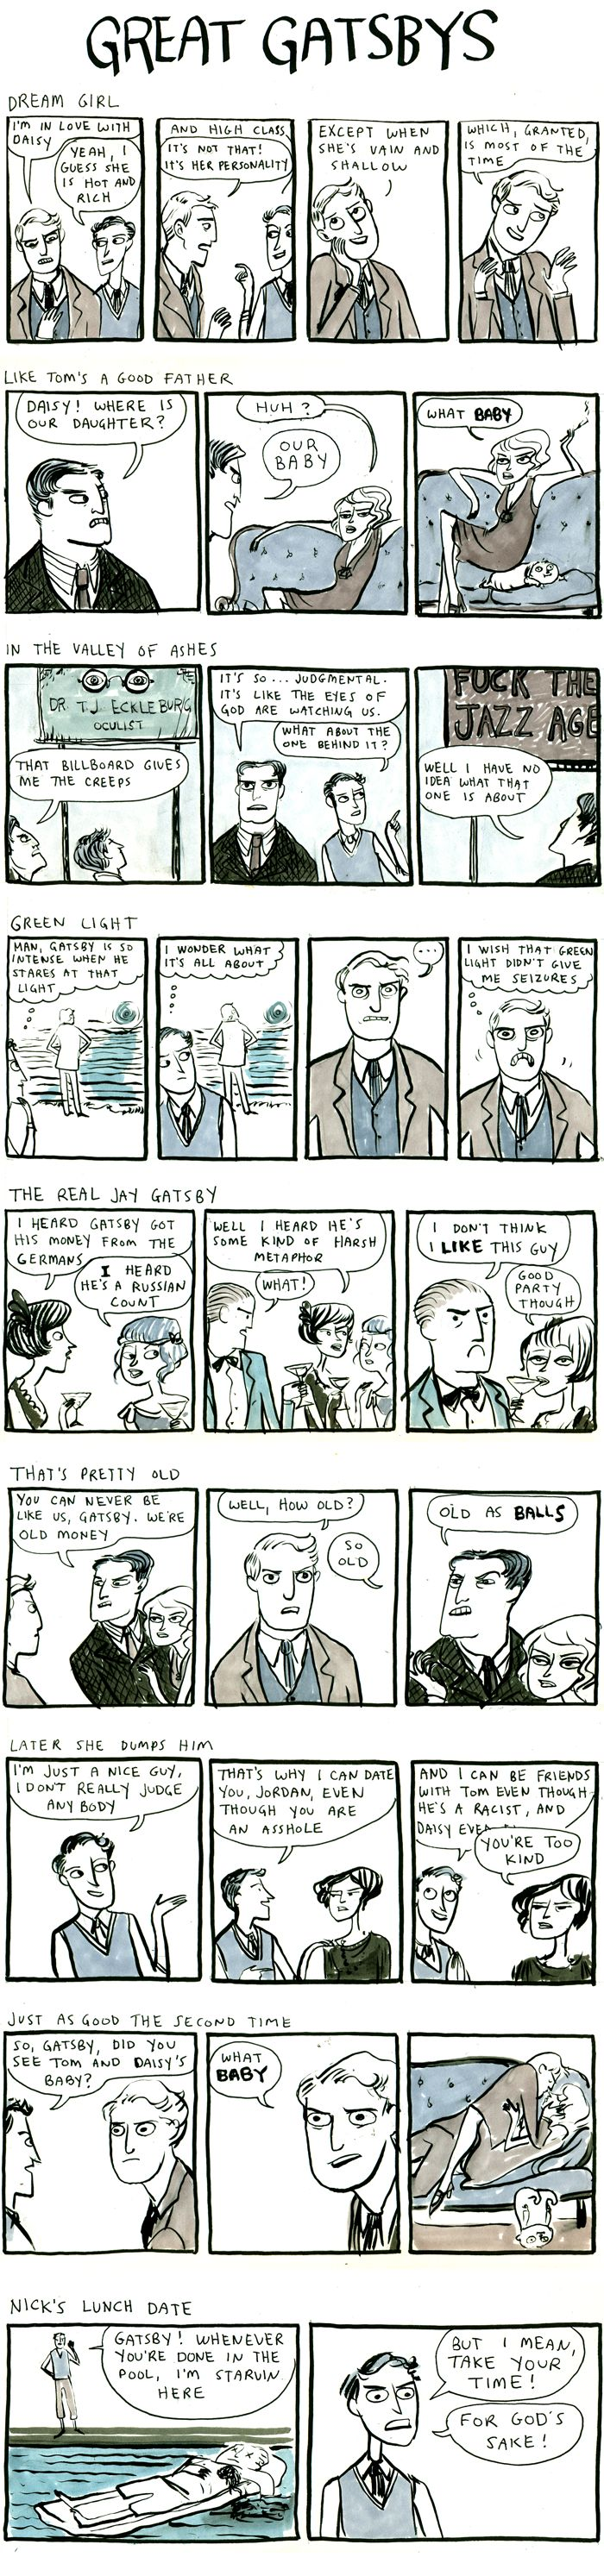 The Great Gatsby by Kate Beaton. This is hilarious! Lolol.